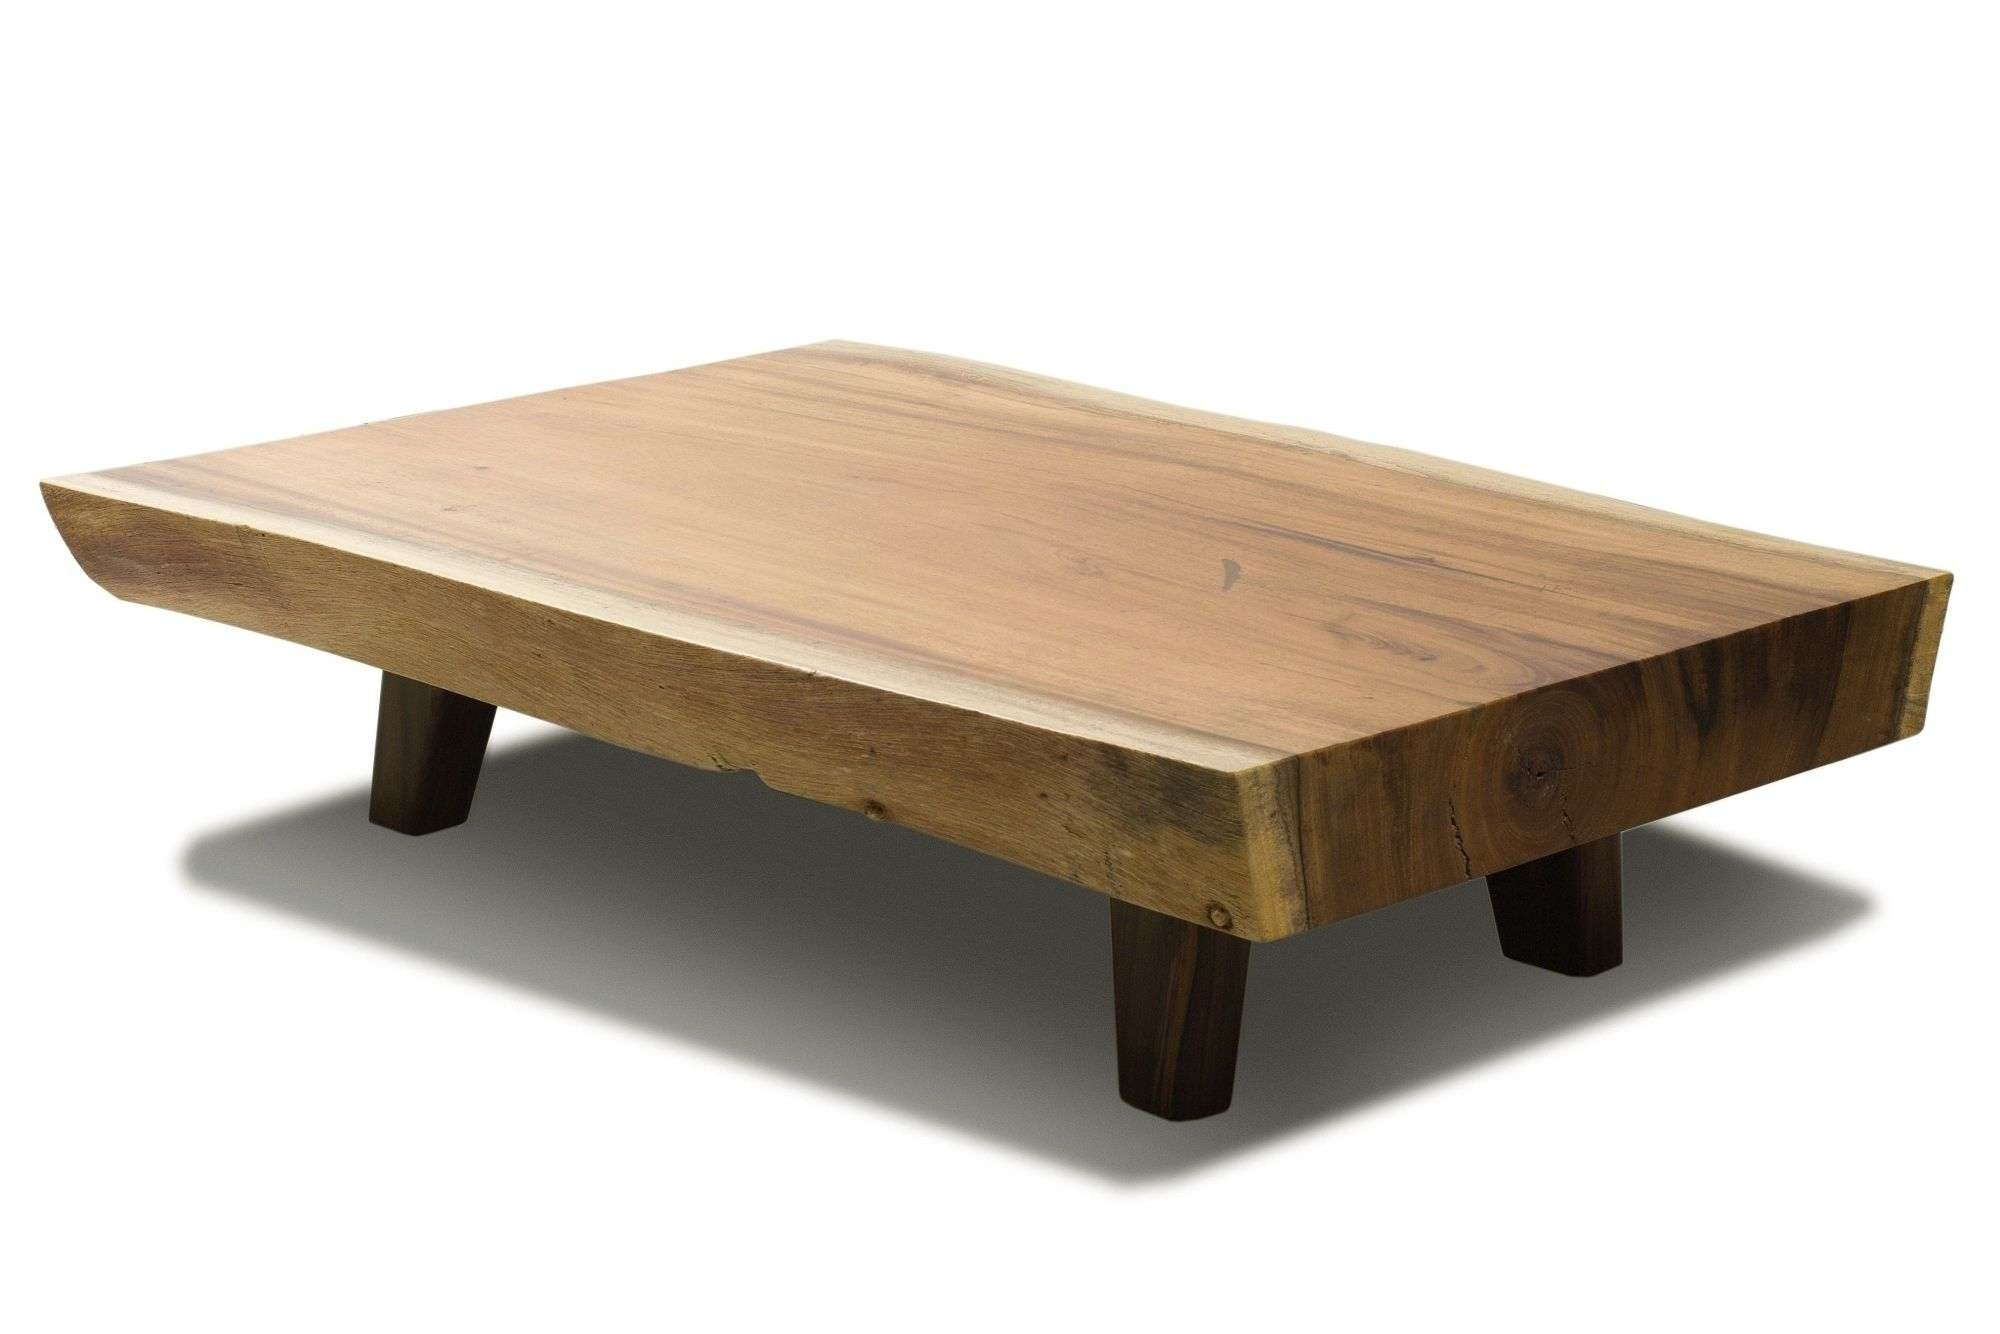 Coffee Tables Ideas: Modern Large Wooden Coffee Table Large Coffee Inside 2017 Very Large Coffee Tables (View 7 of 20)